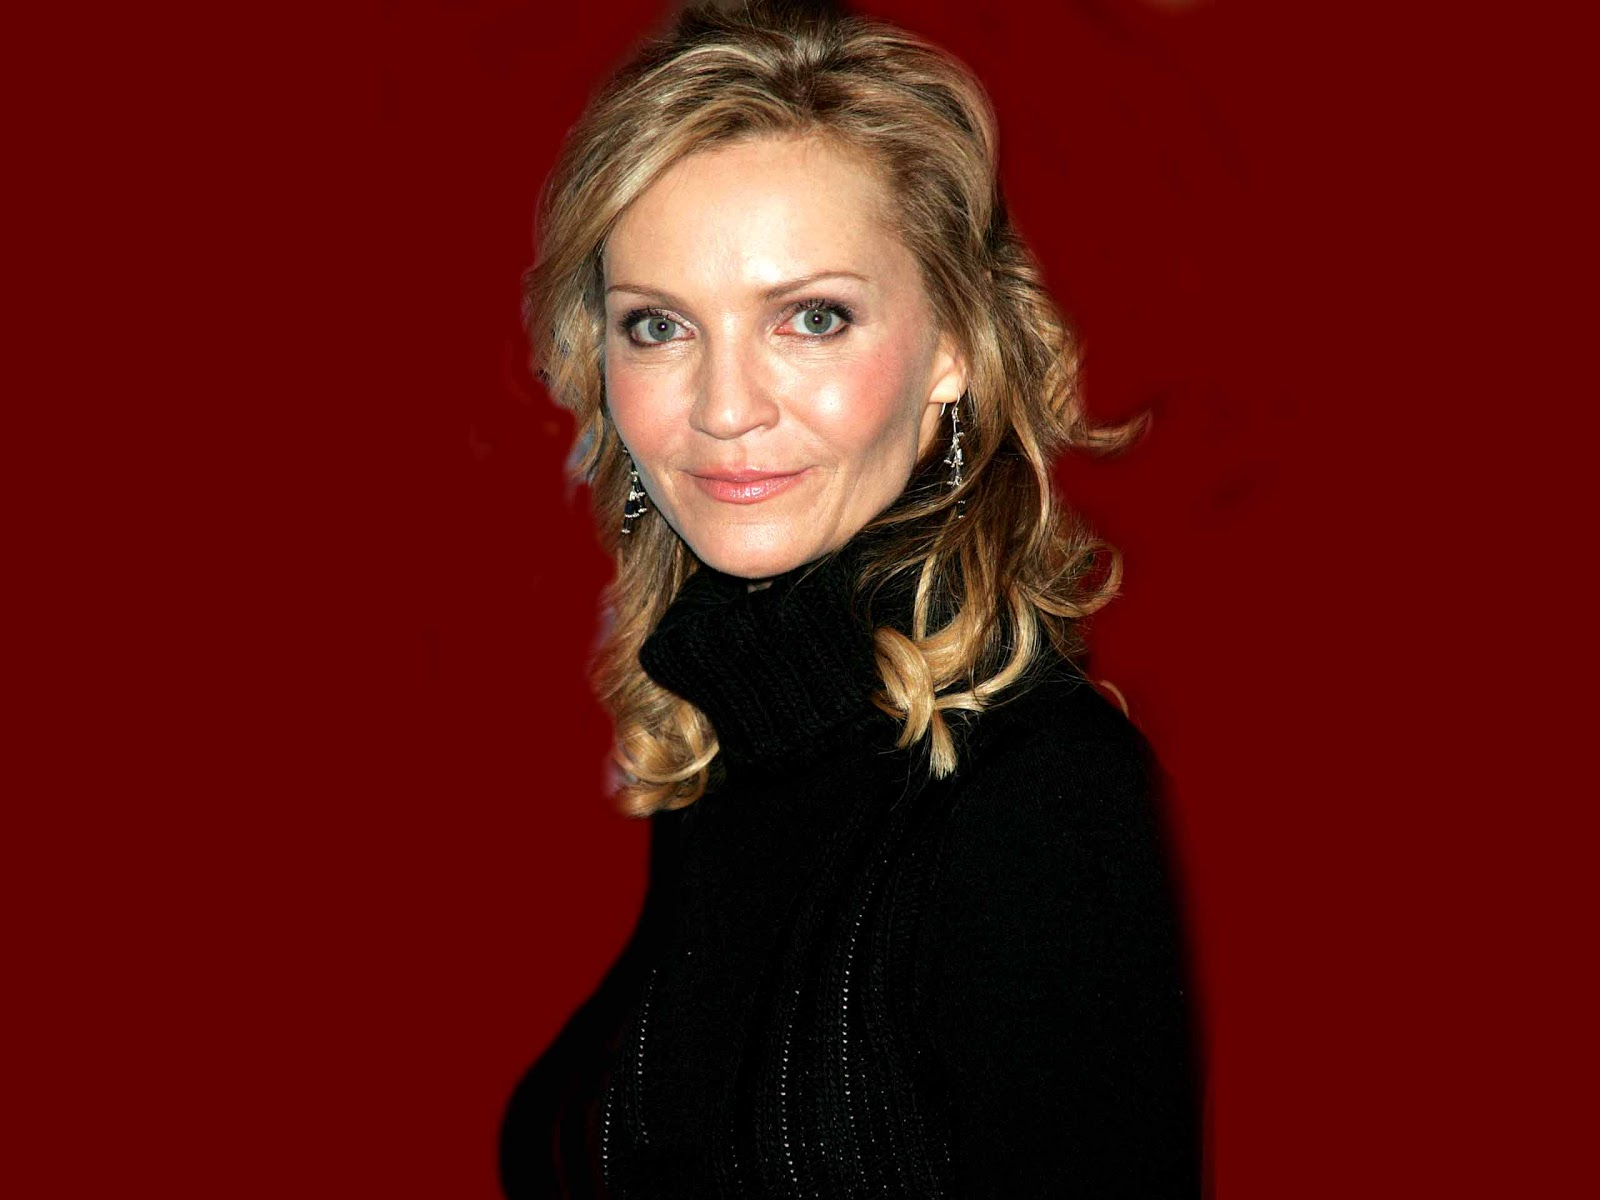 Download this Joan Allen Photo picture